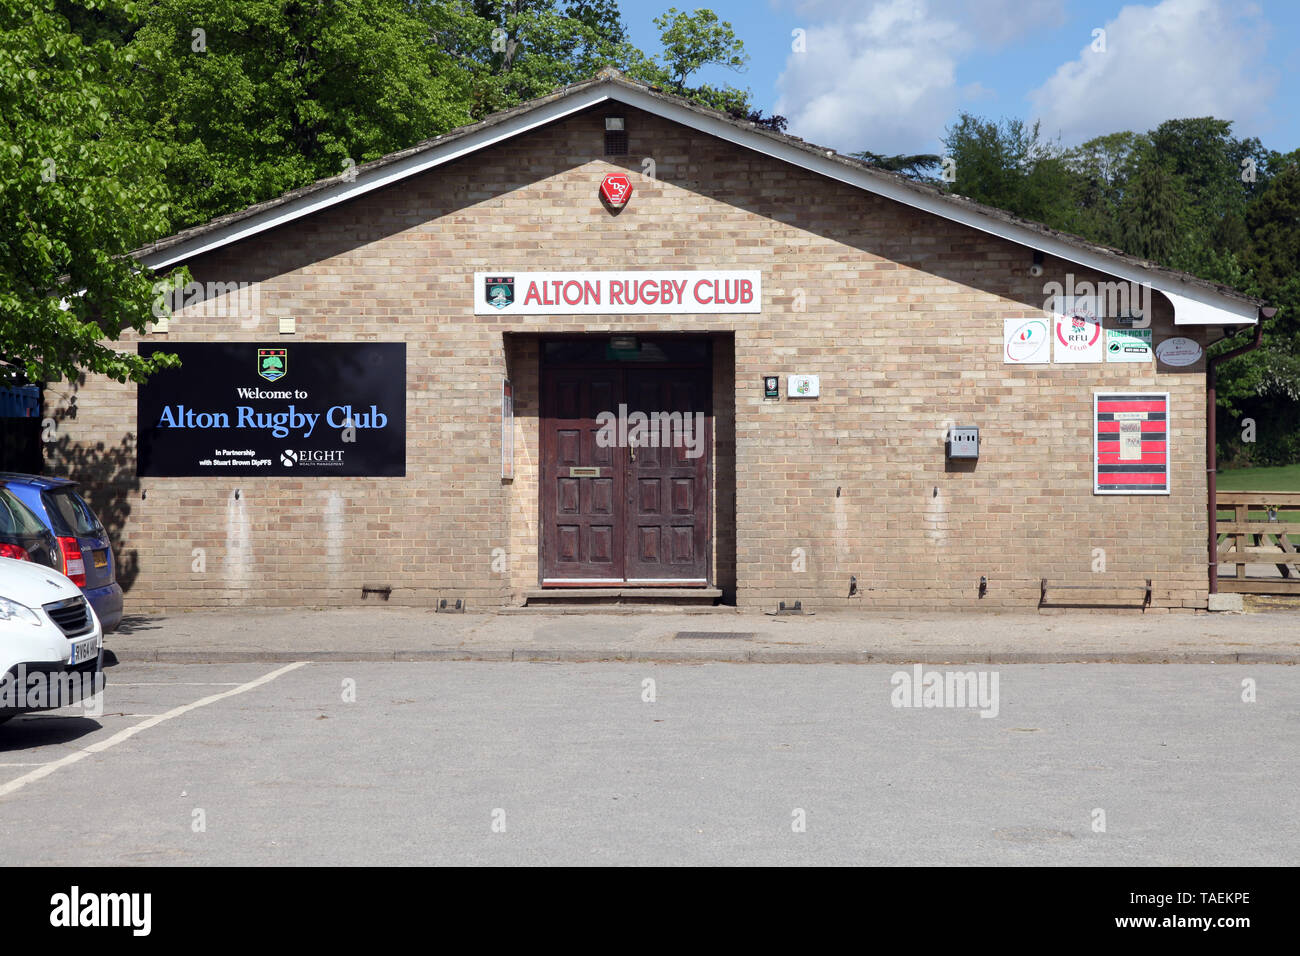 Alton, Hampshire - Alton Rugby Club, clubhouse in daytime, 2019 - Stock Image